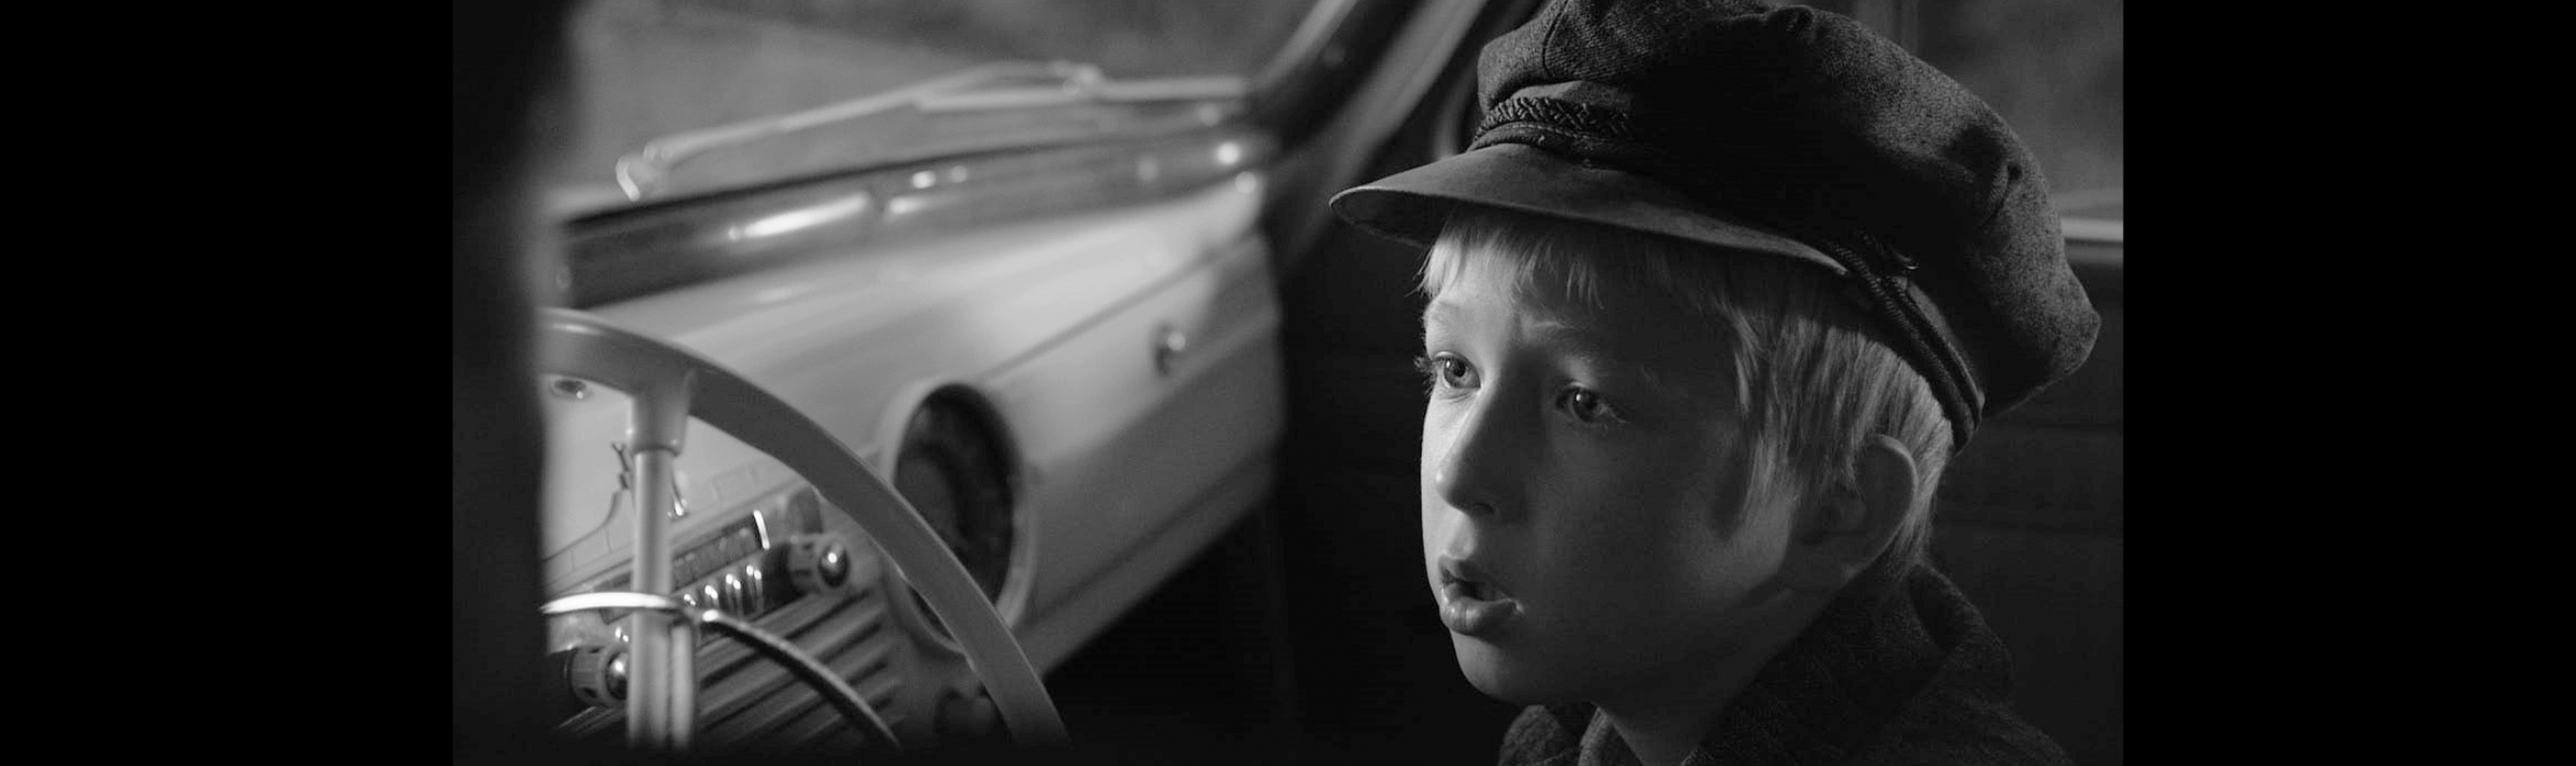 Young boy sitting in a car